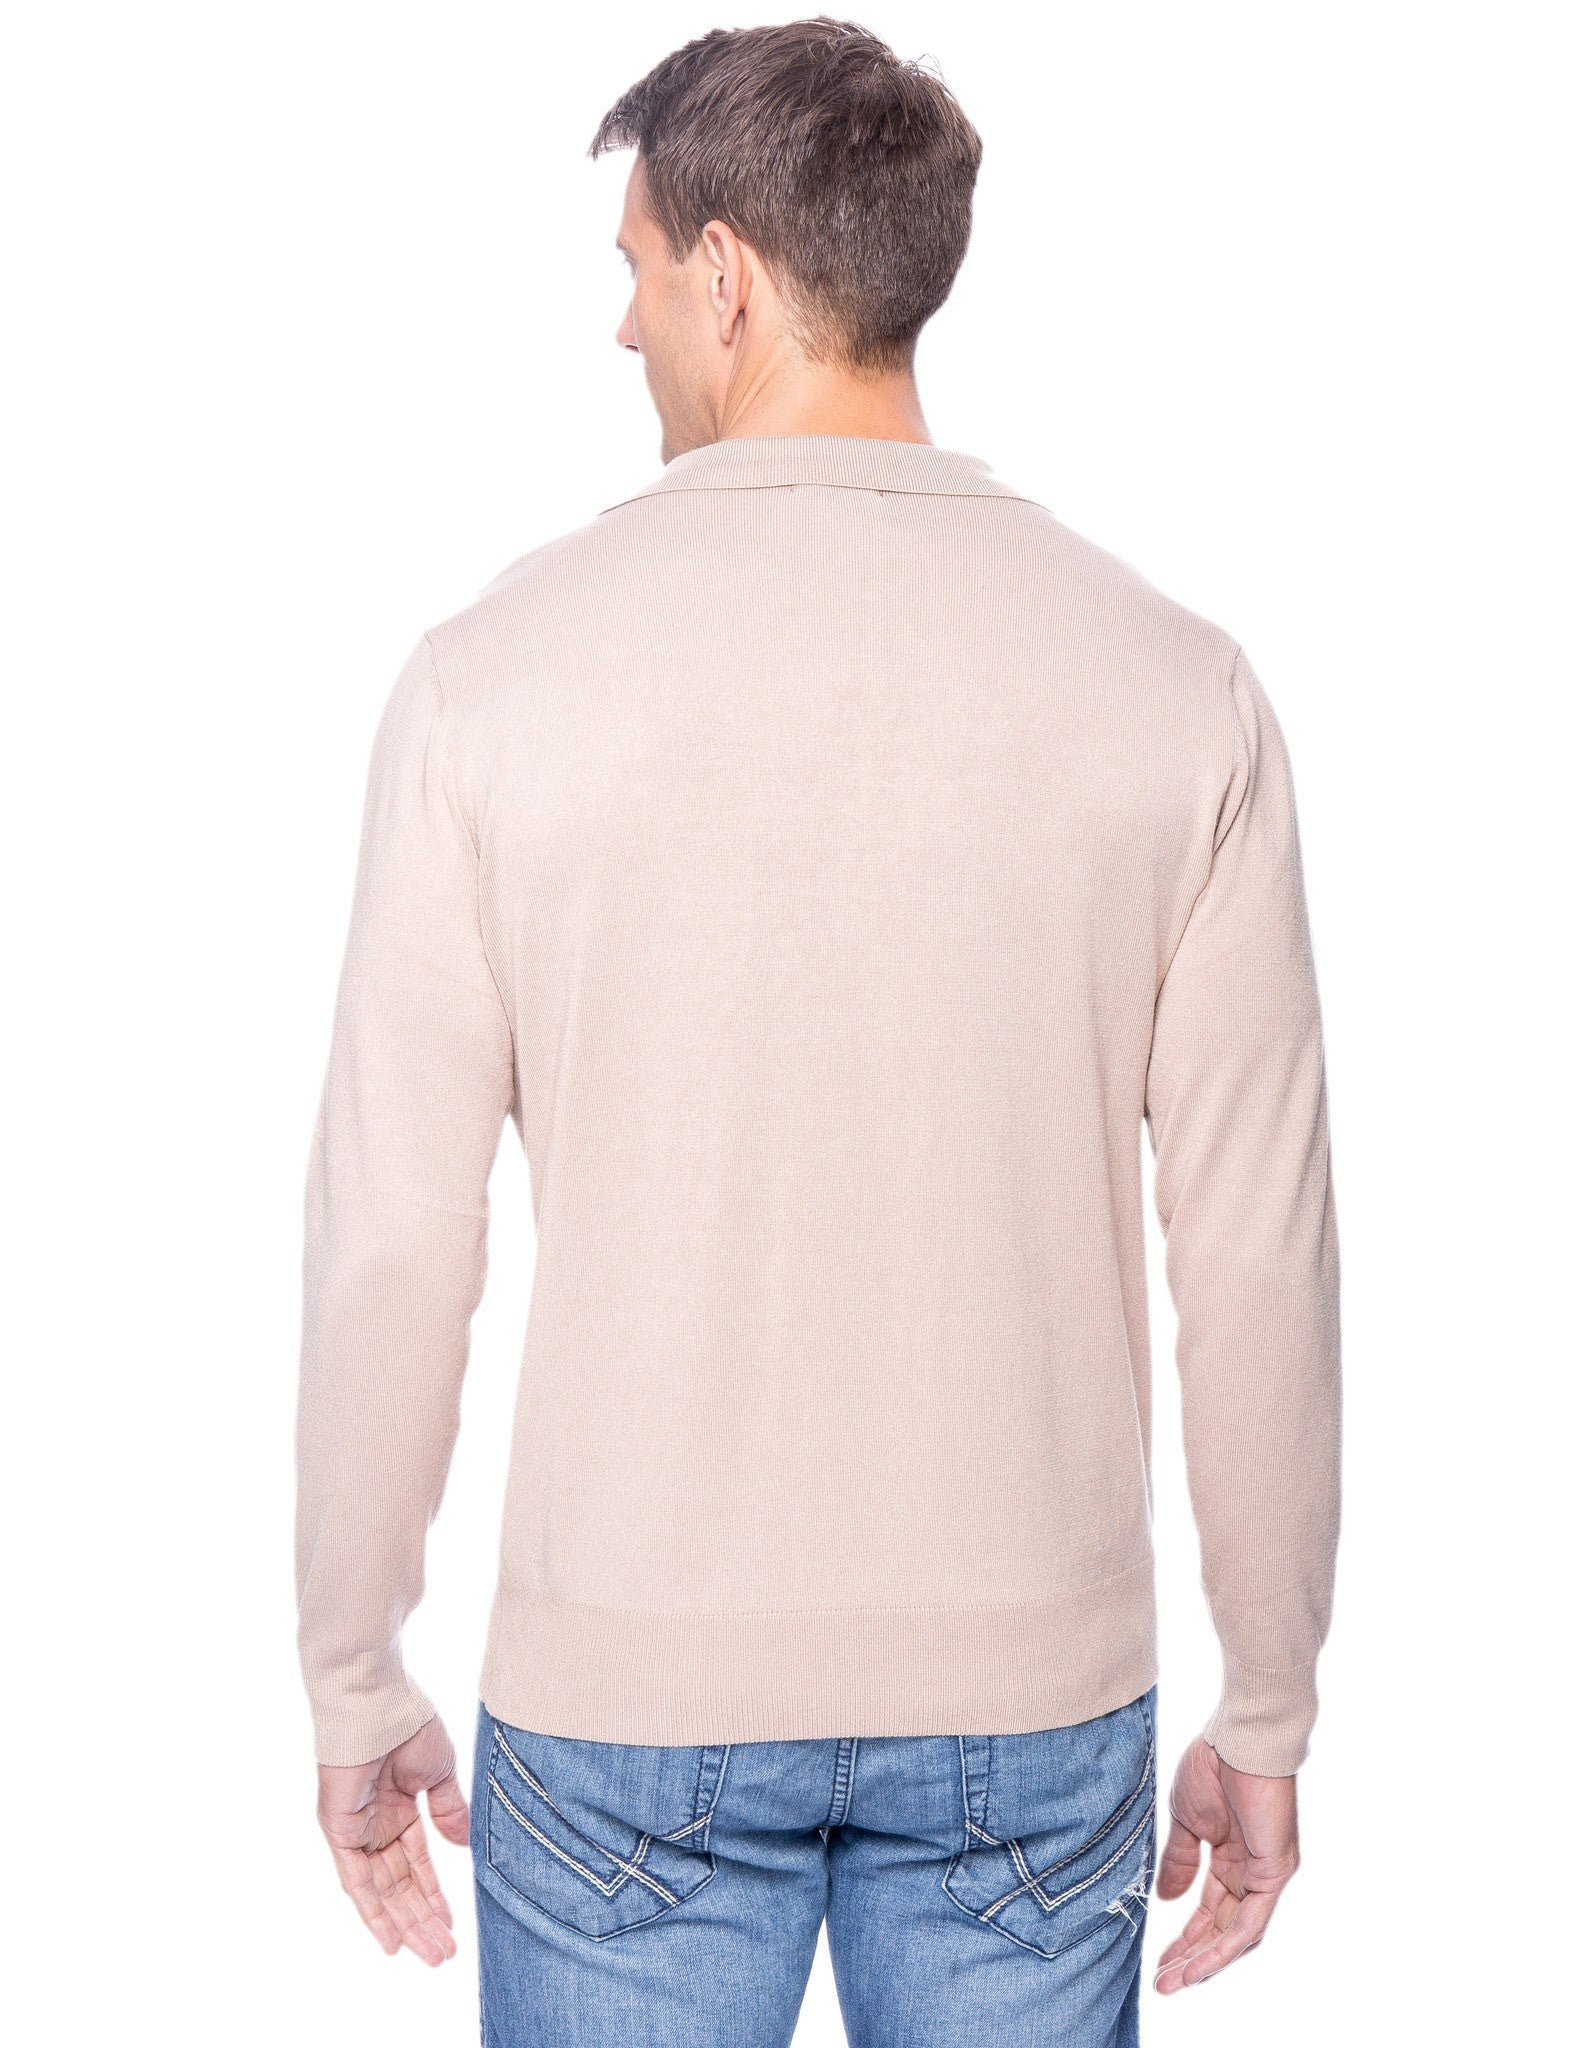 Tocco Reale Men's Classic Knit Long Sleeve Polo Sweater - Stone